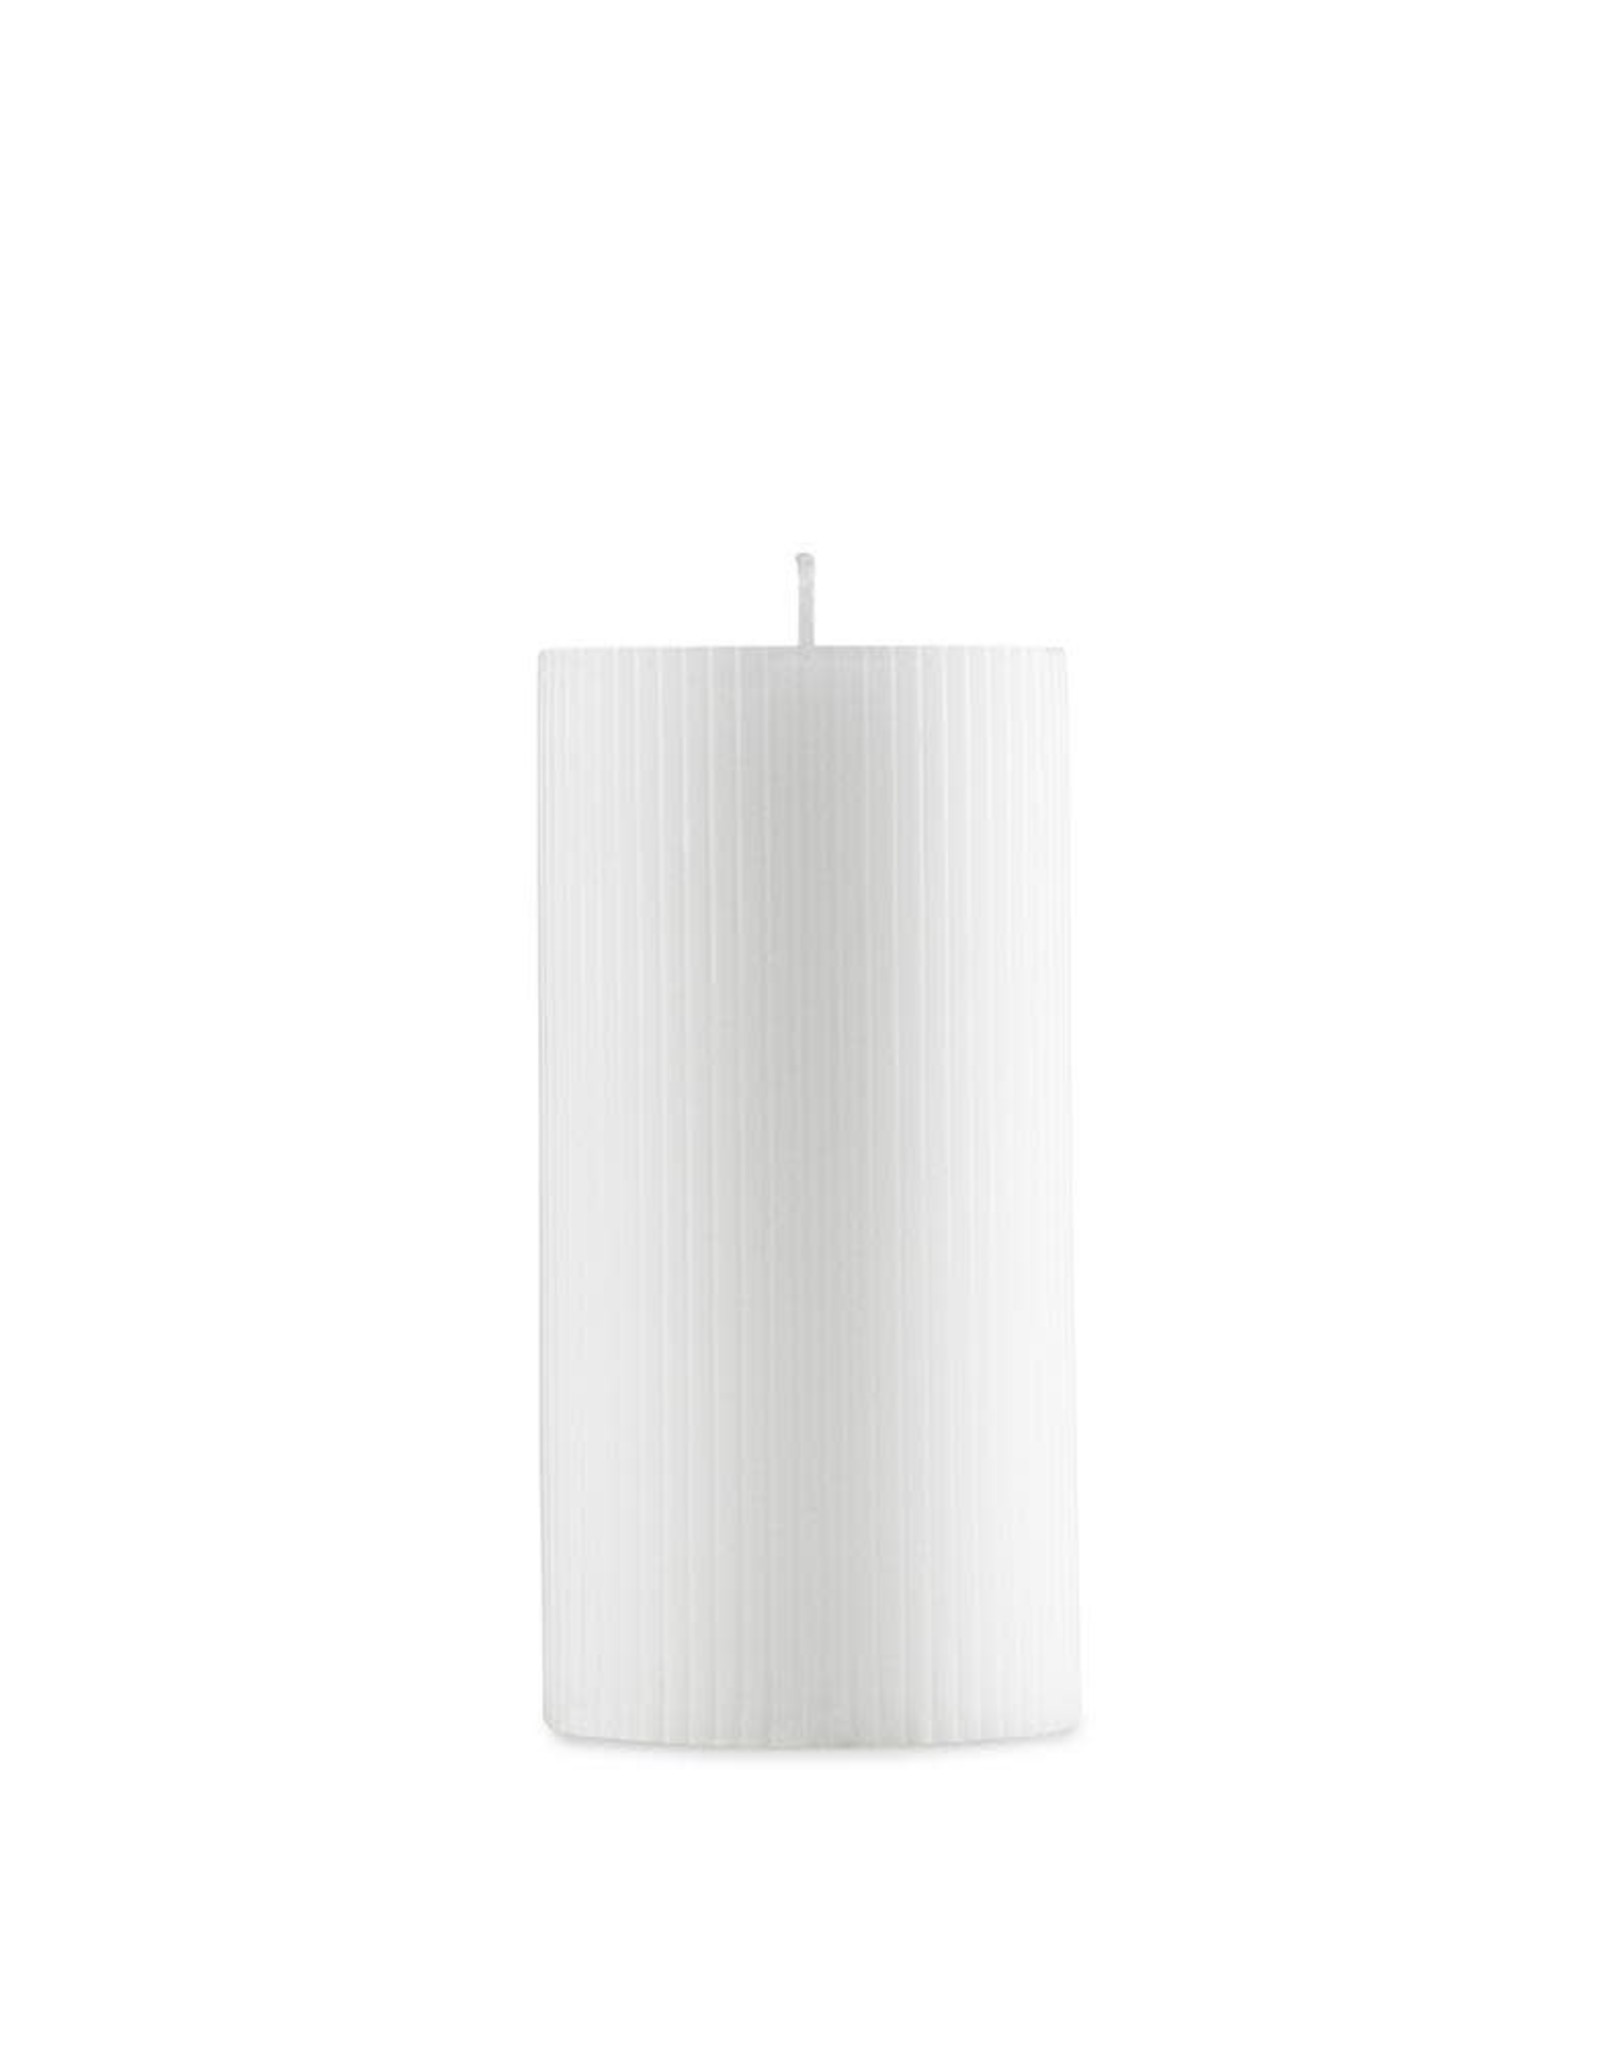 Normann Copenhagen Normann Grooved Block Candle white